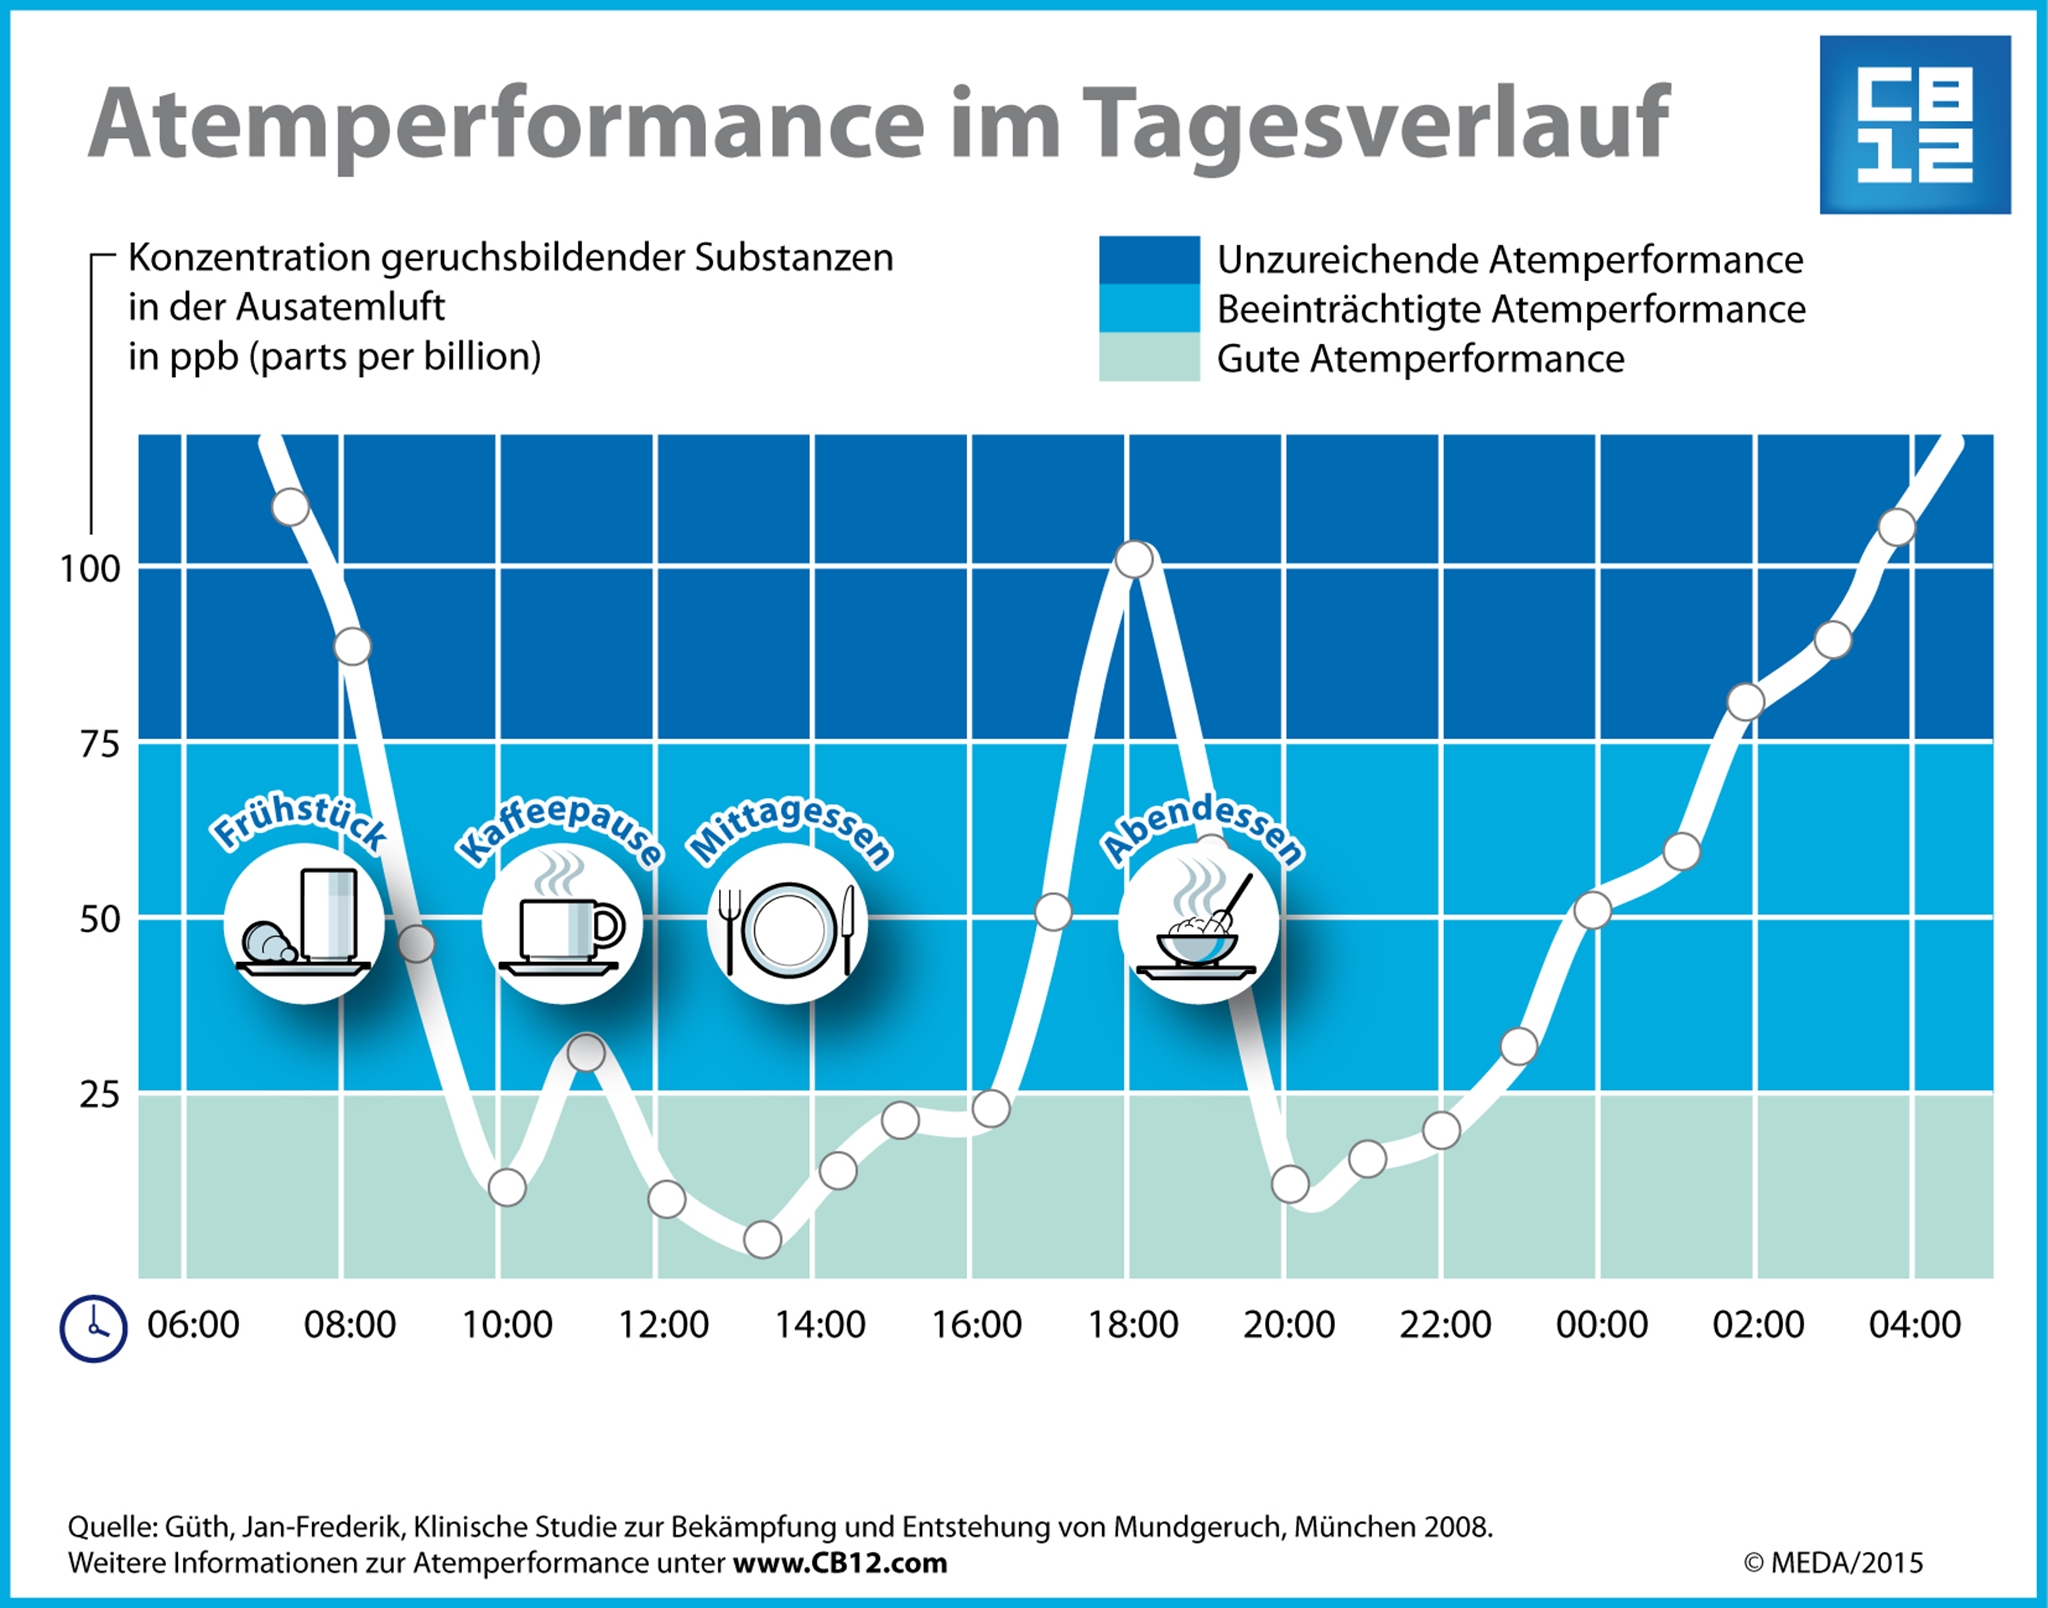 CB12_Grafik_Atemperformance_Tagesverlauf.jpg